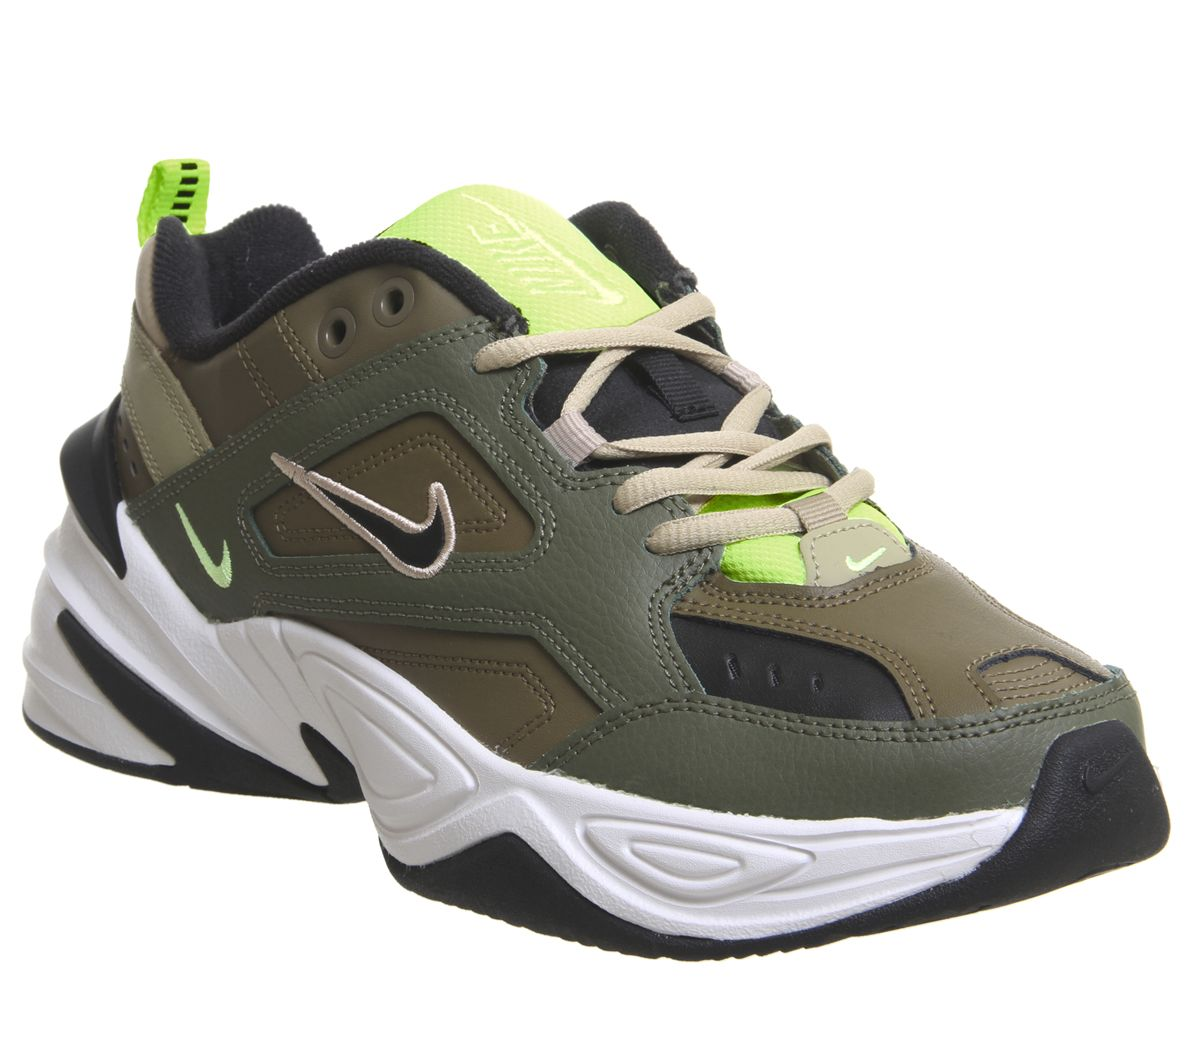 wholesale dealer 5e67f c64b2 Nike M2k Tekno Trainers Medium Olive Black Beige Phantom Desert ...